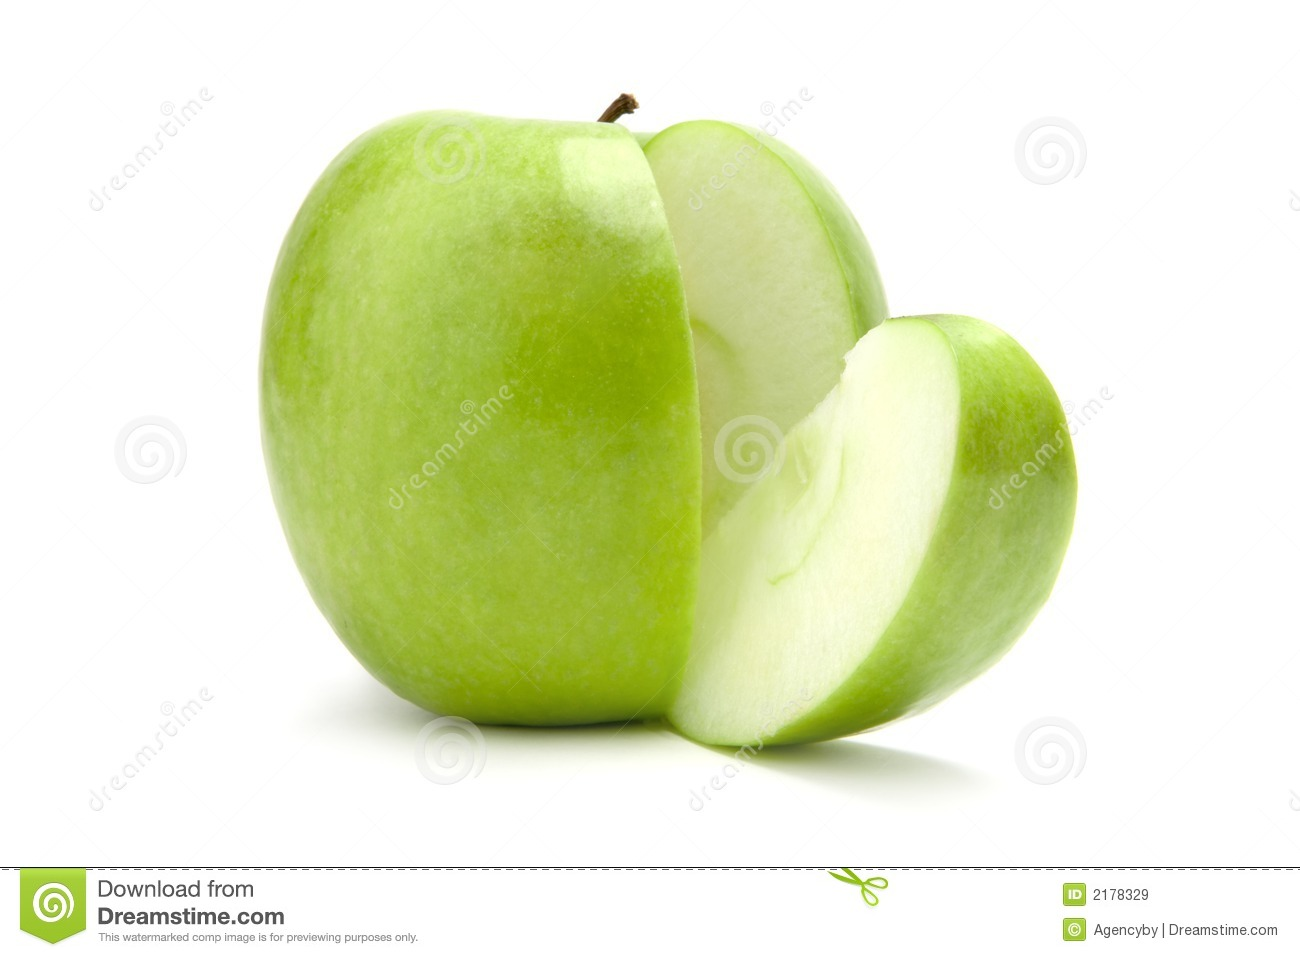 äpple - skivad green